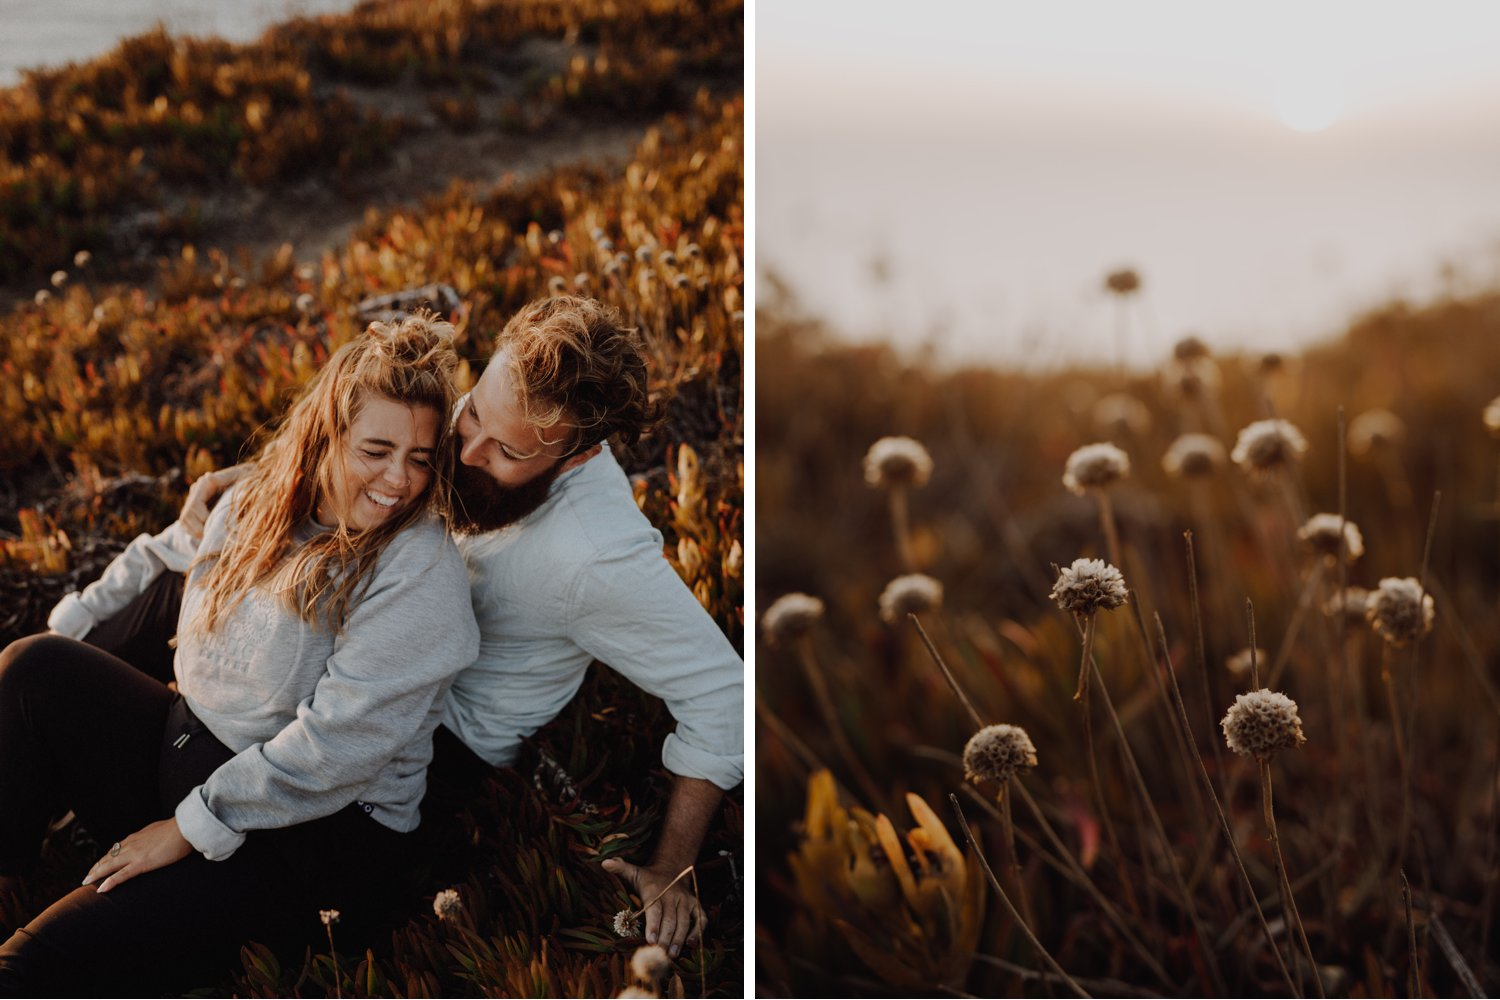 Destination Elopement Photographer - Connection Session in Portugal - sunset portraits in the grass